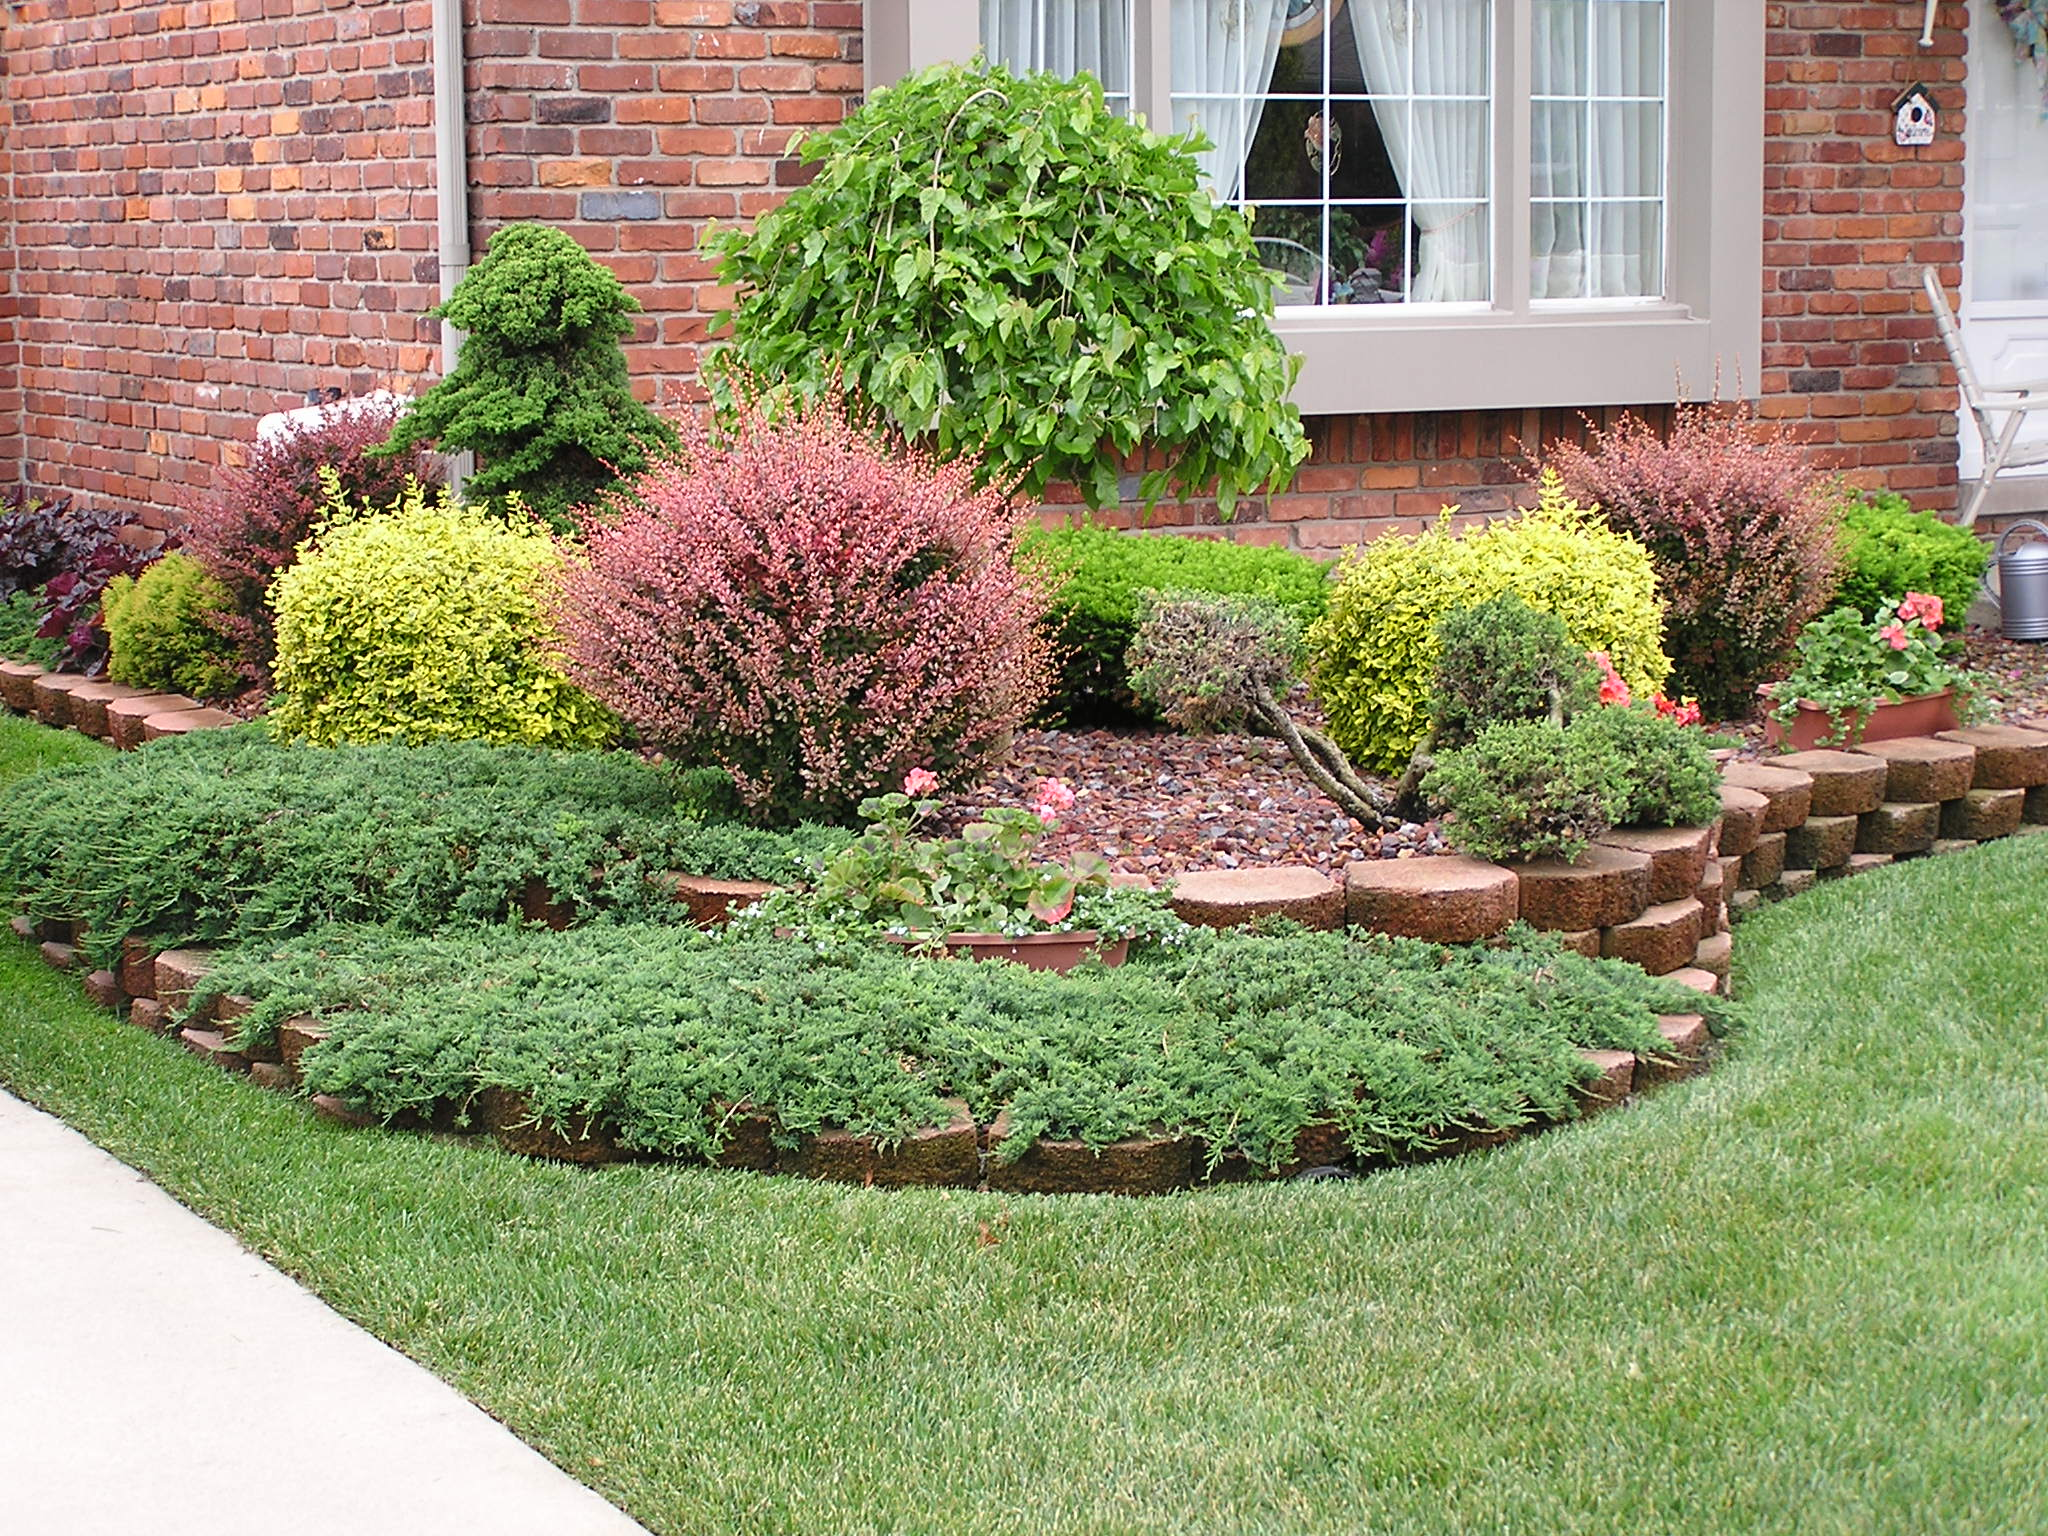 garden design ideas shrubs photo - 3